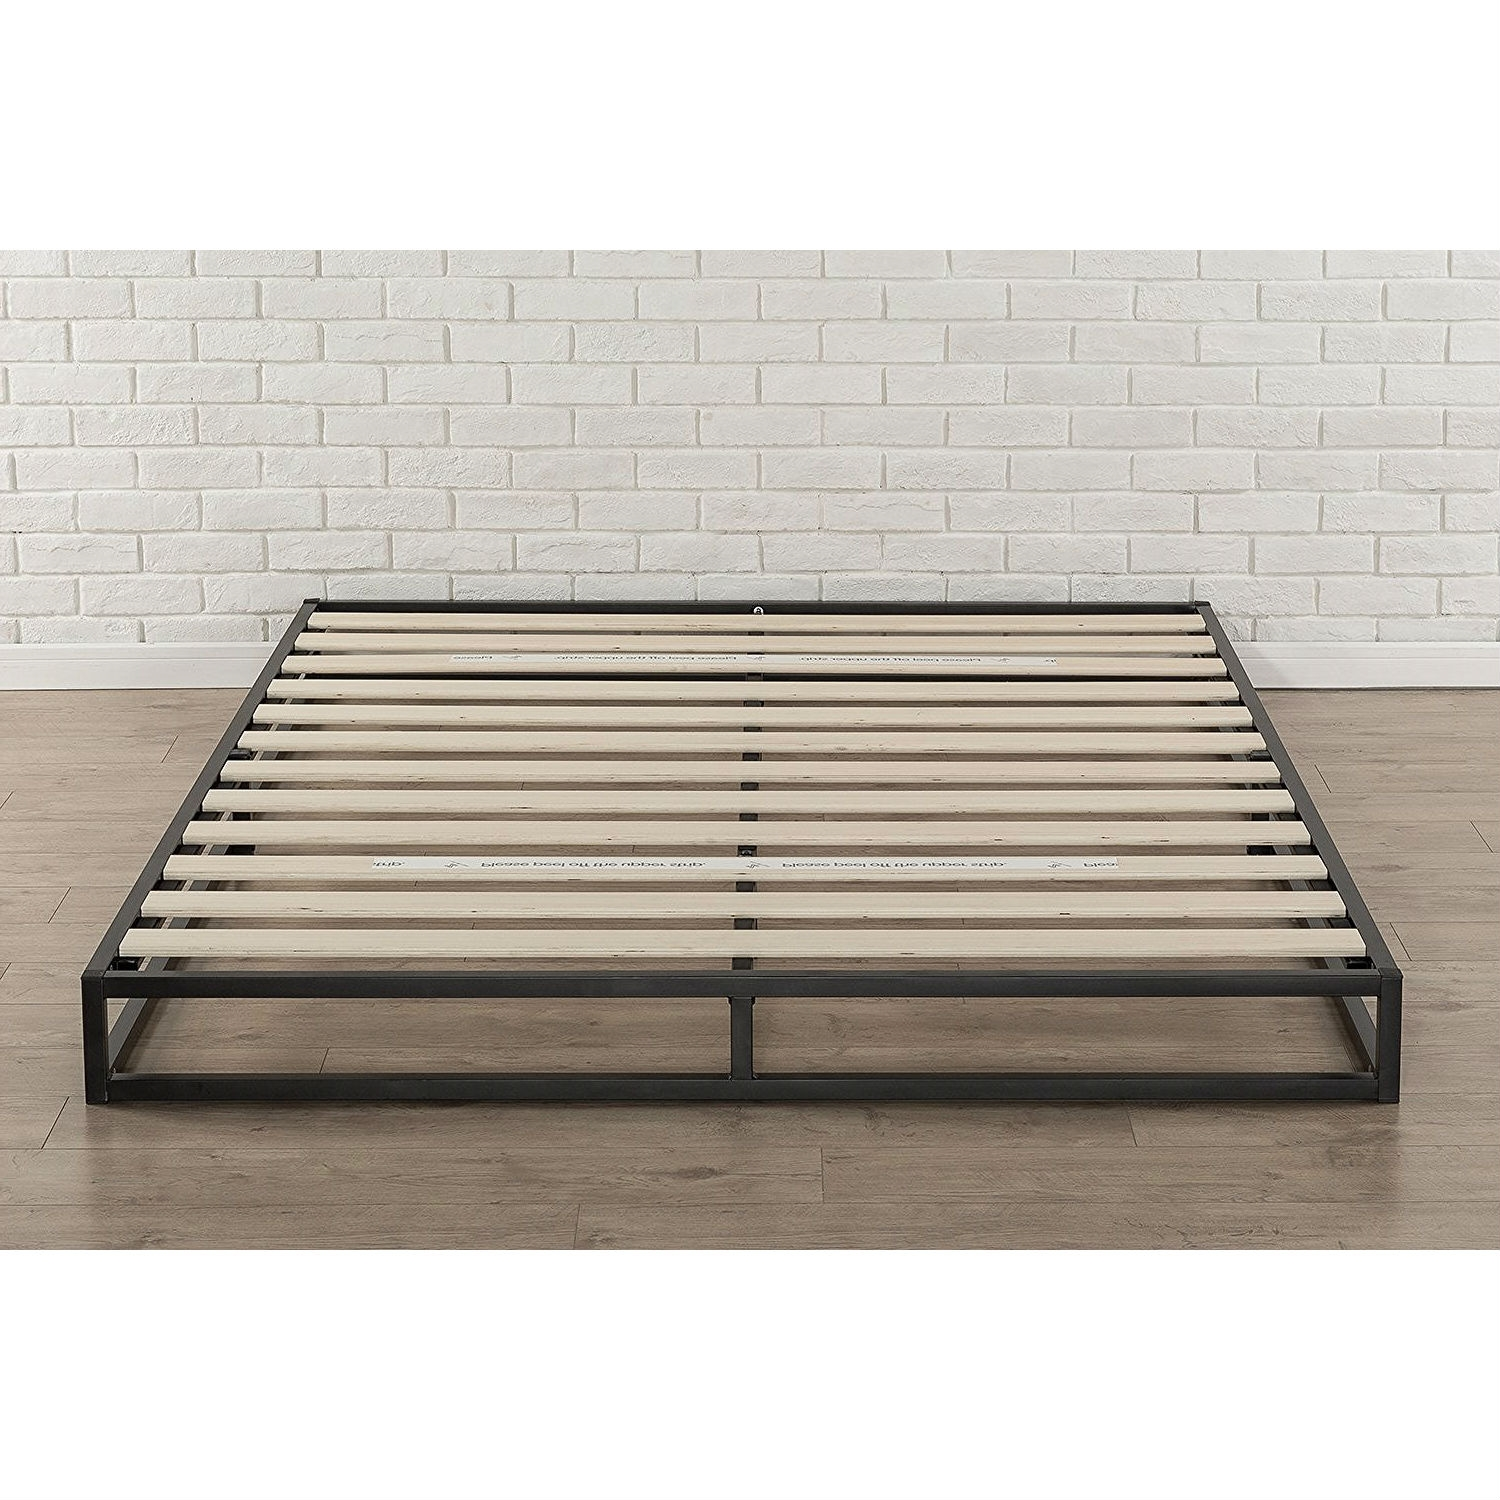 Queen Size 6 Inch Low Profile Metal